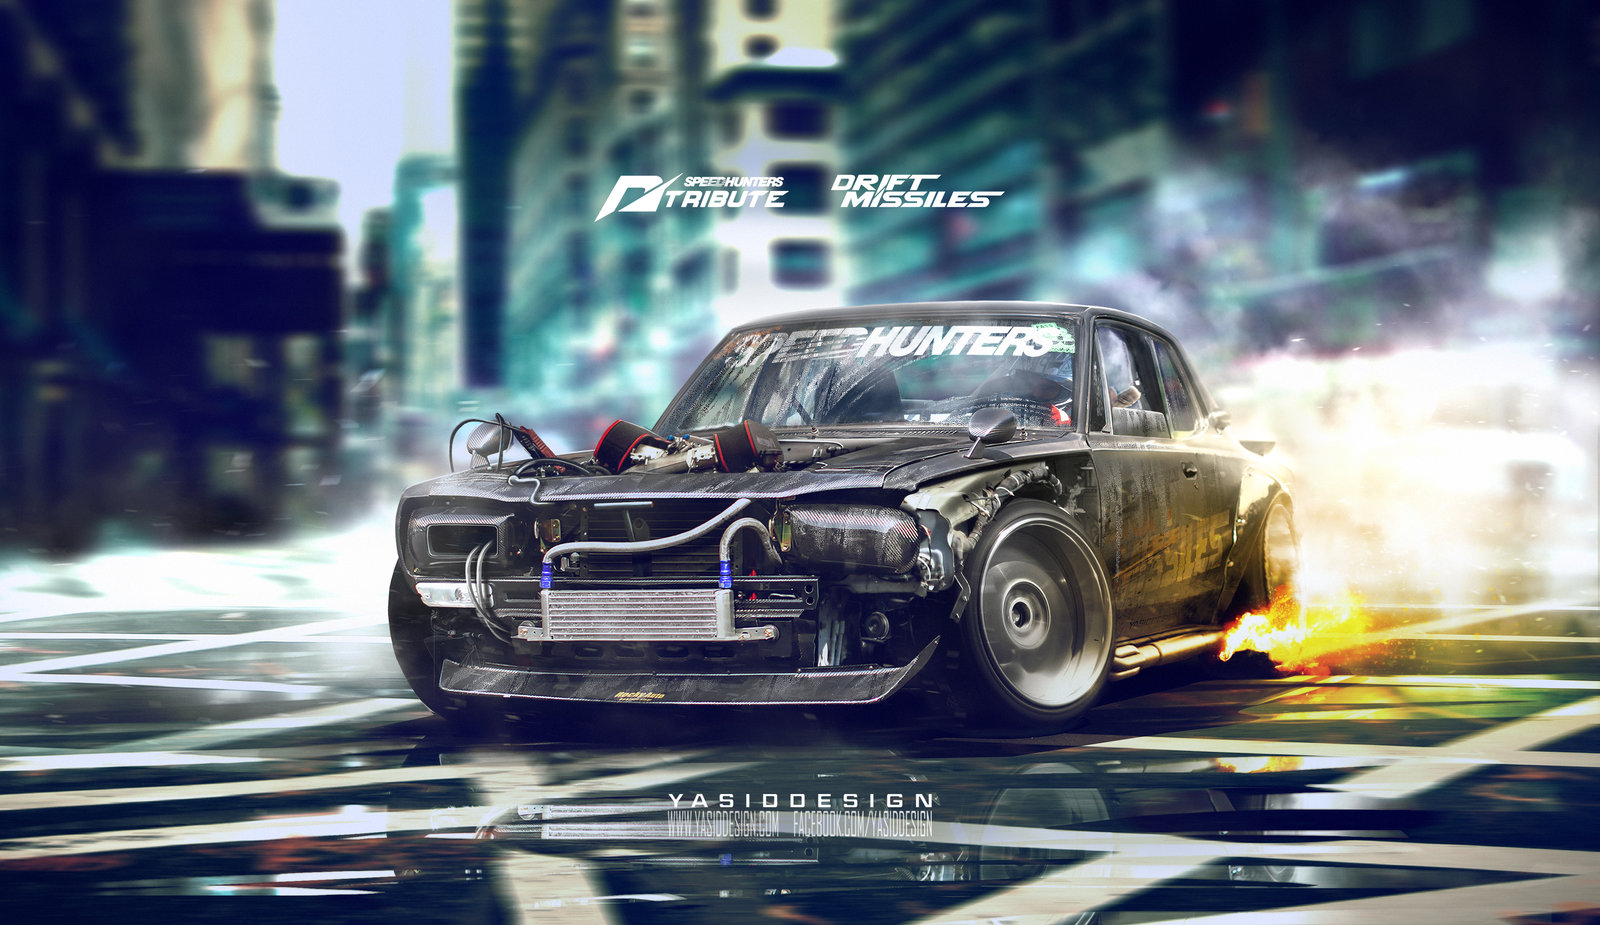 Speedhunters Nissan Skyline KGC10 2000 GT-R _ Need For Speed Tribute